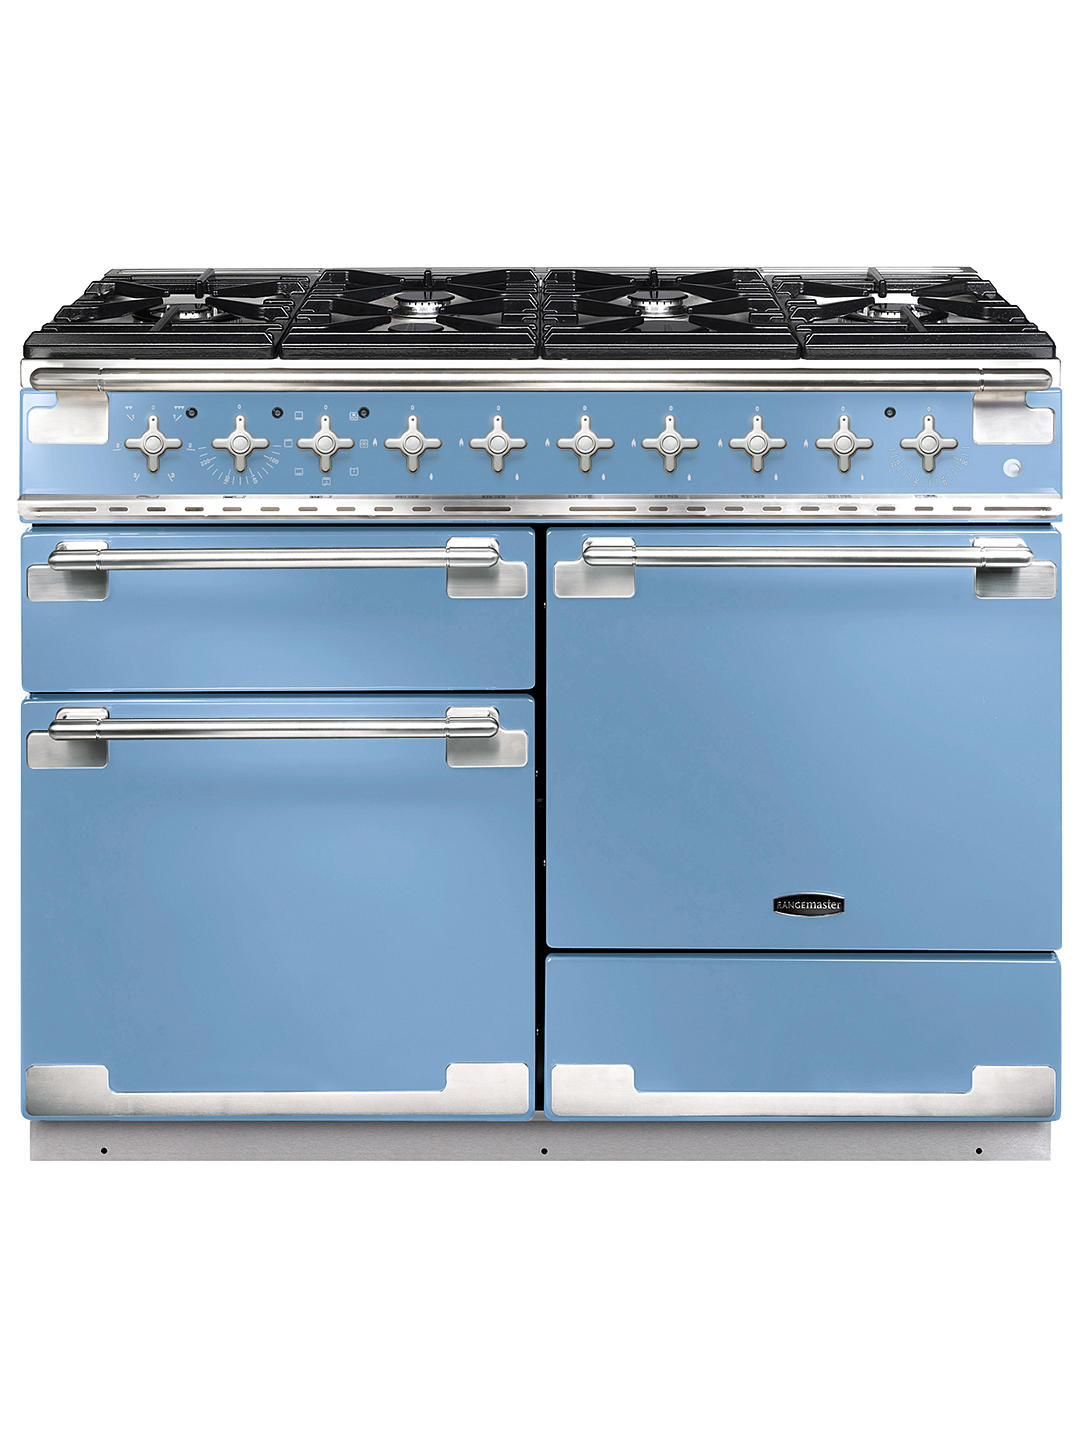 Buy Rangemaster Elise 110 Dual Fuel Range Cooker, China Blue/Brushed Chrome Trim Online at johnlewis.com